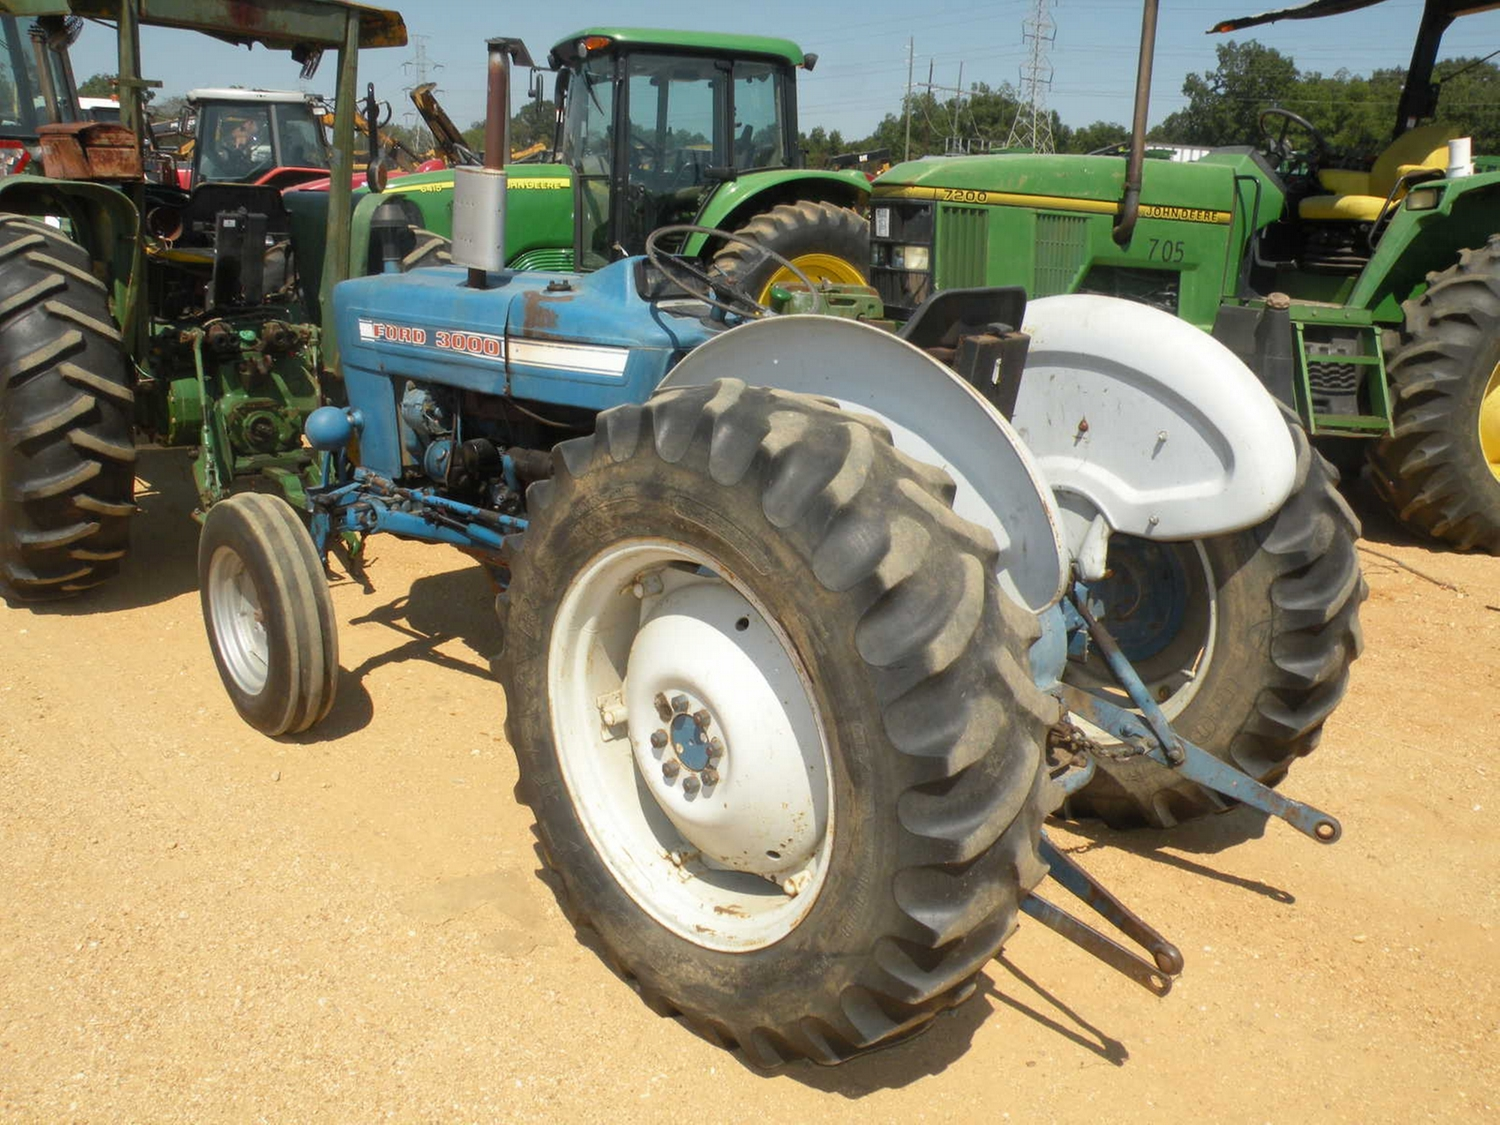 Ford 3000 Farm Tractor : Ford farm tractor j m wood auction company inc